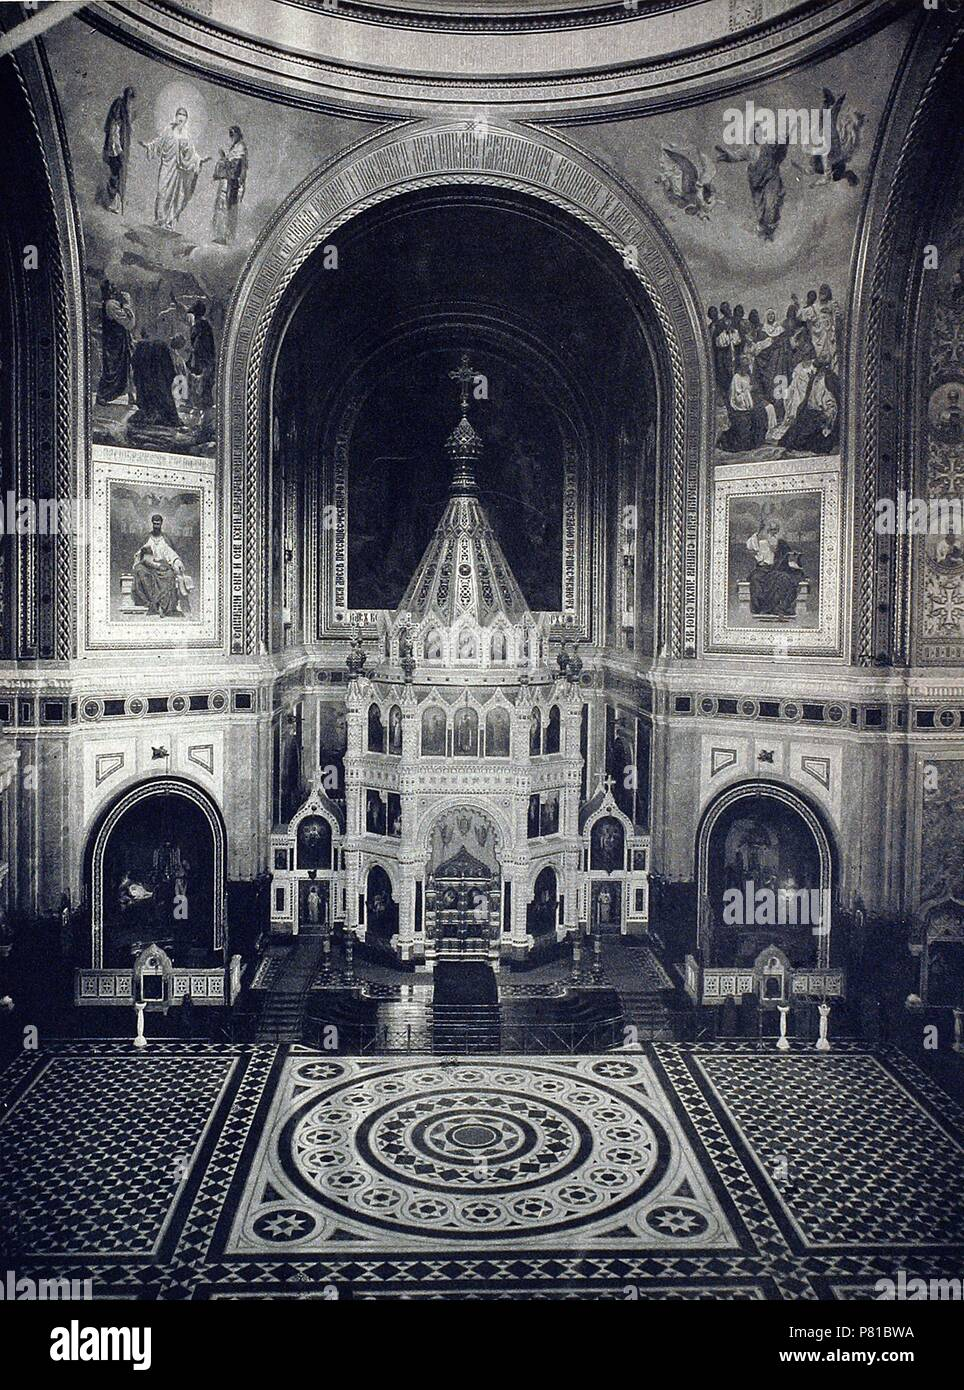 Interior View Of The Cathedral Of Christ The Saviour In